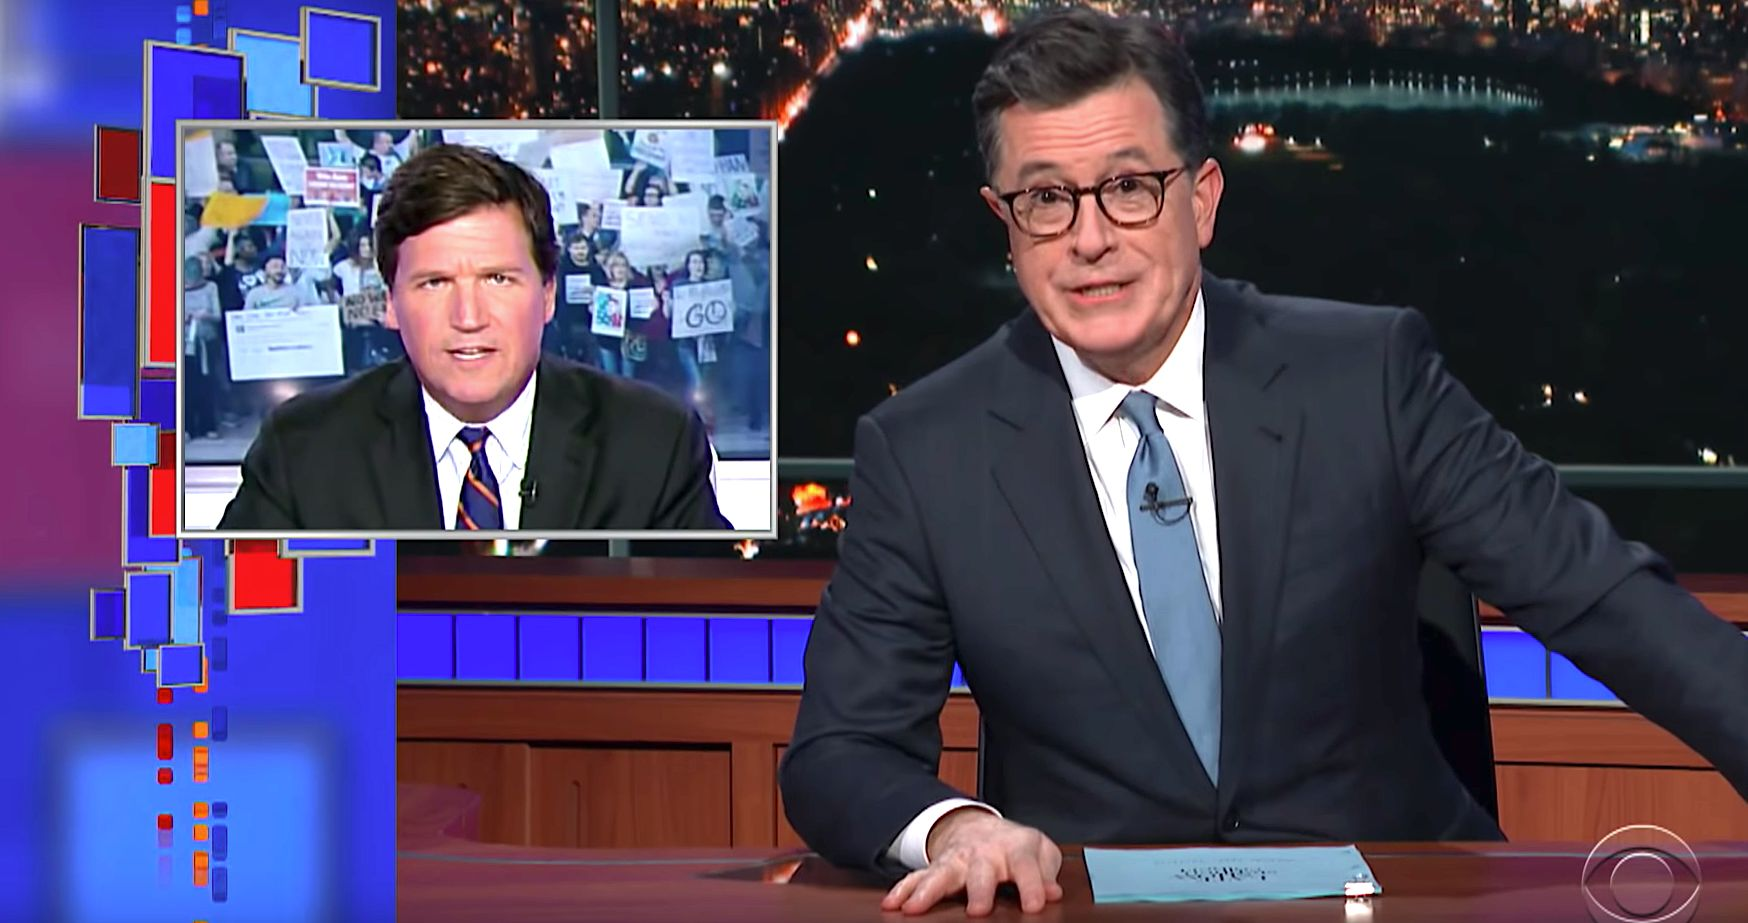 Tucker Carlson and Stephen Colbert